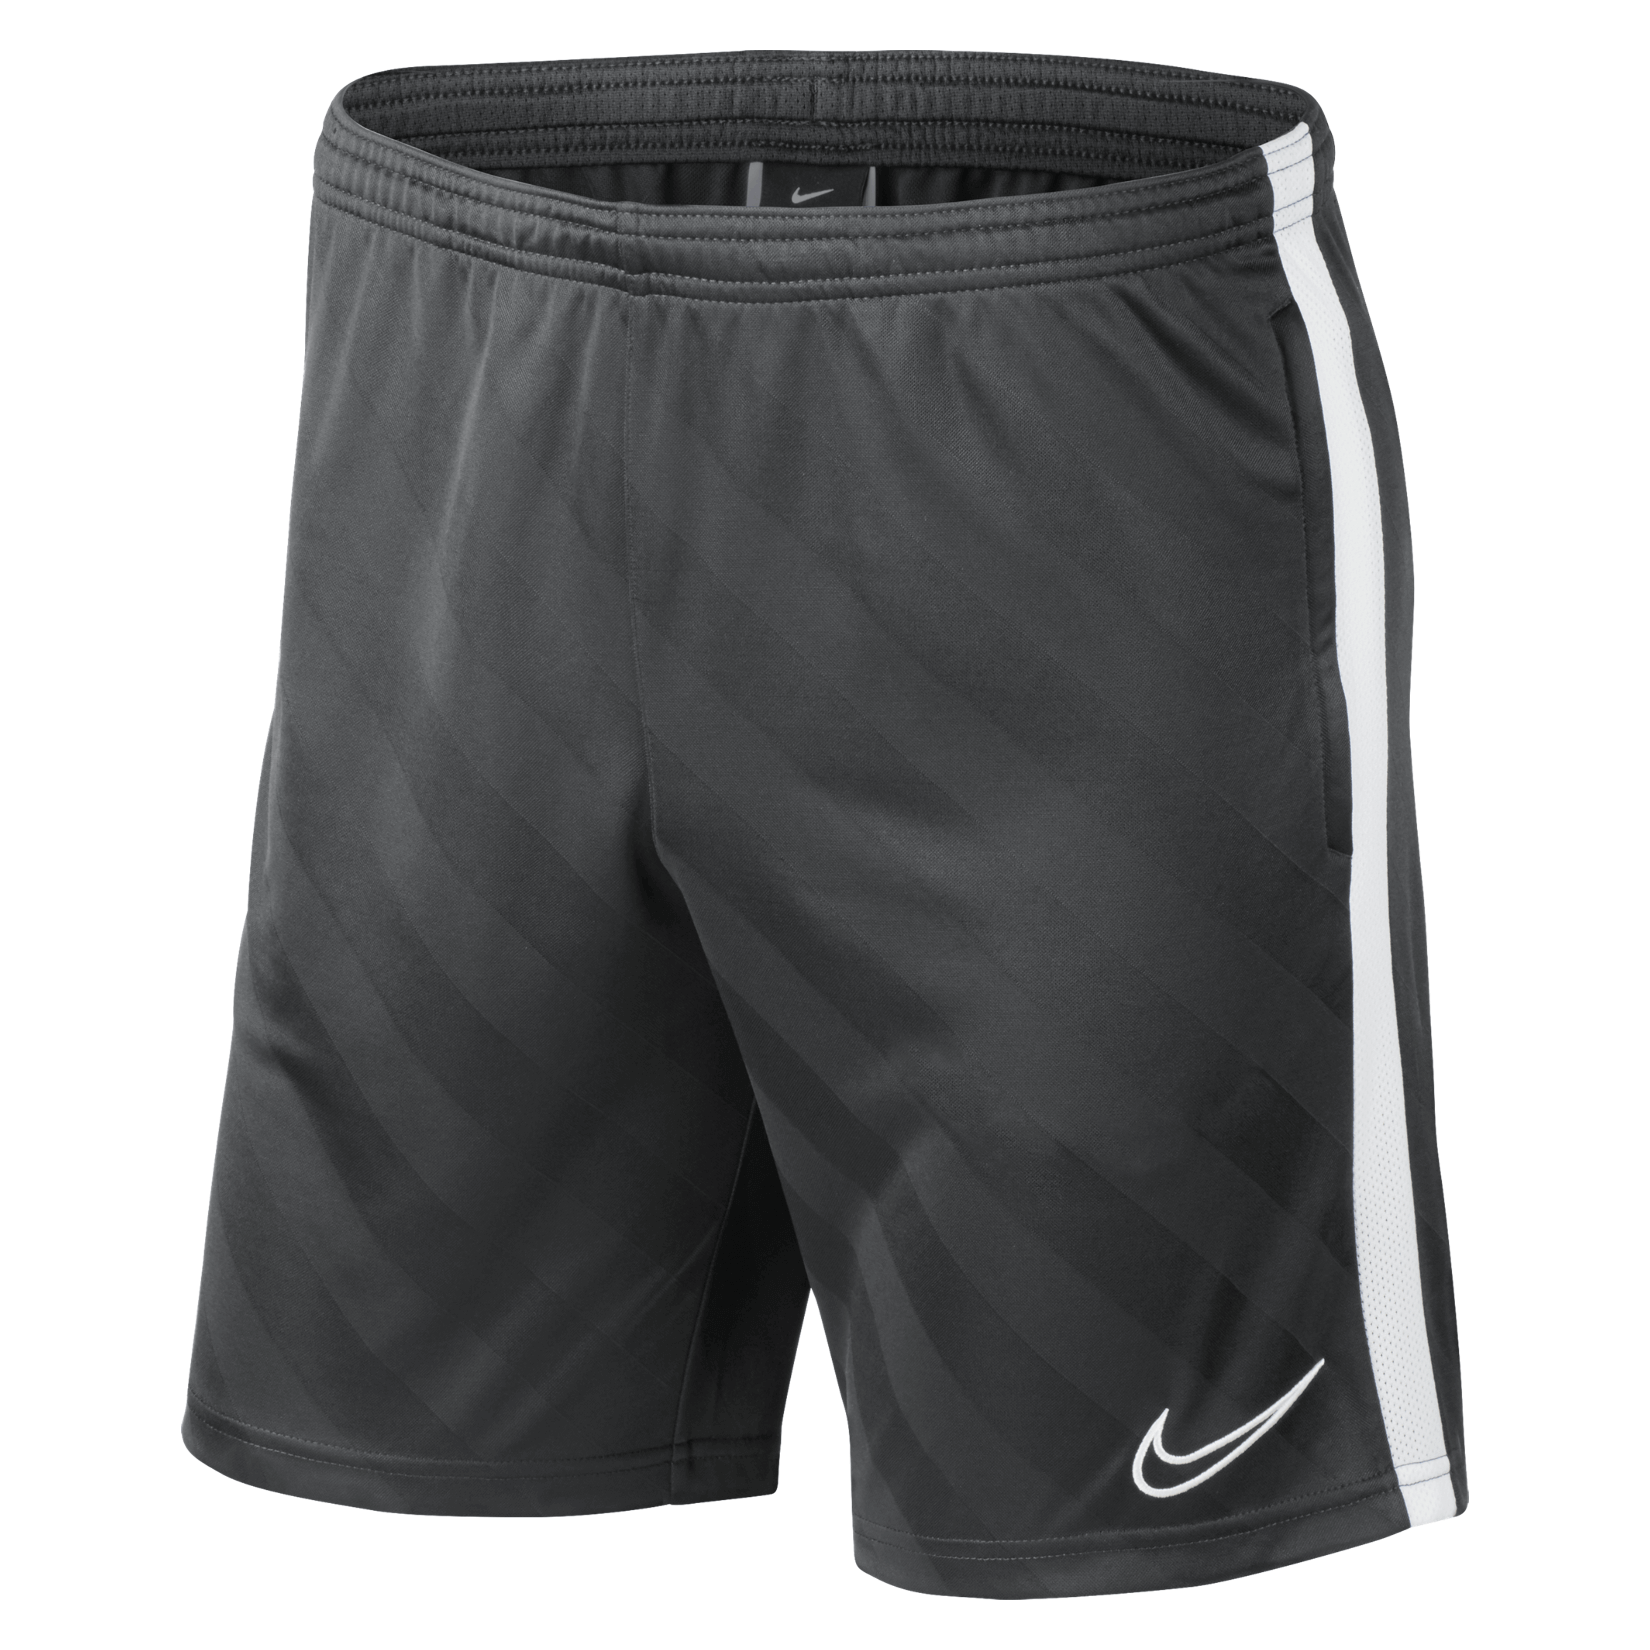 Nike Dri-fit Academy 19 Shorts